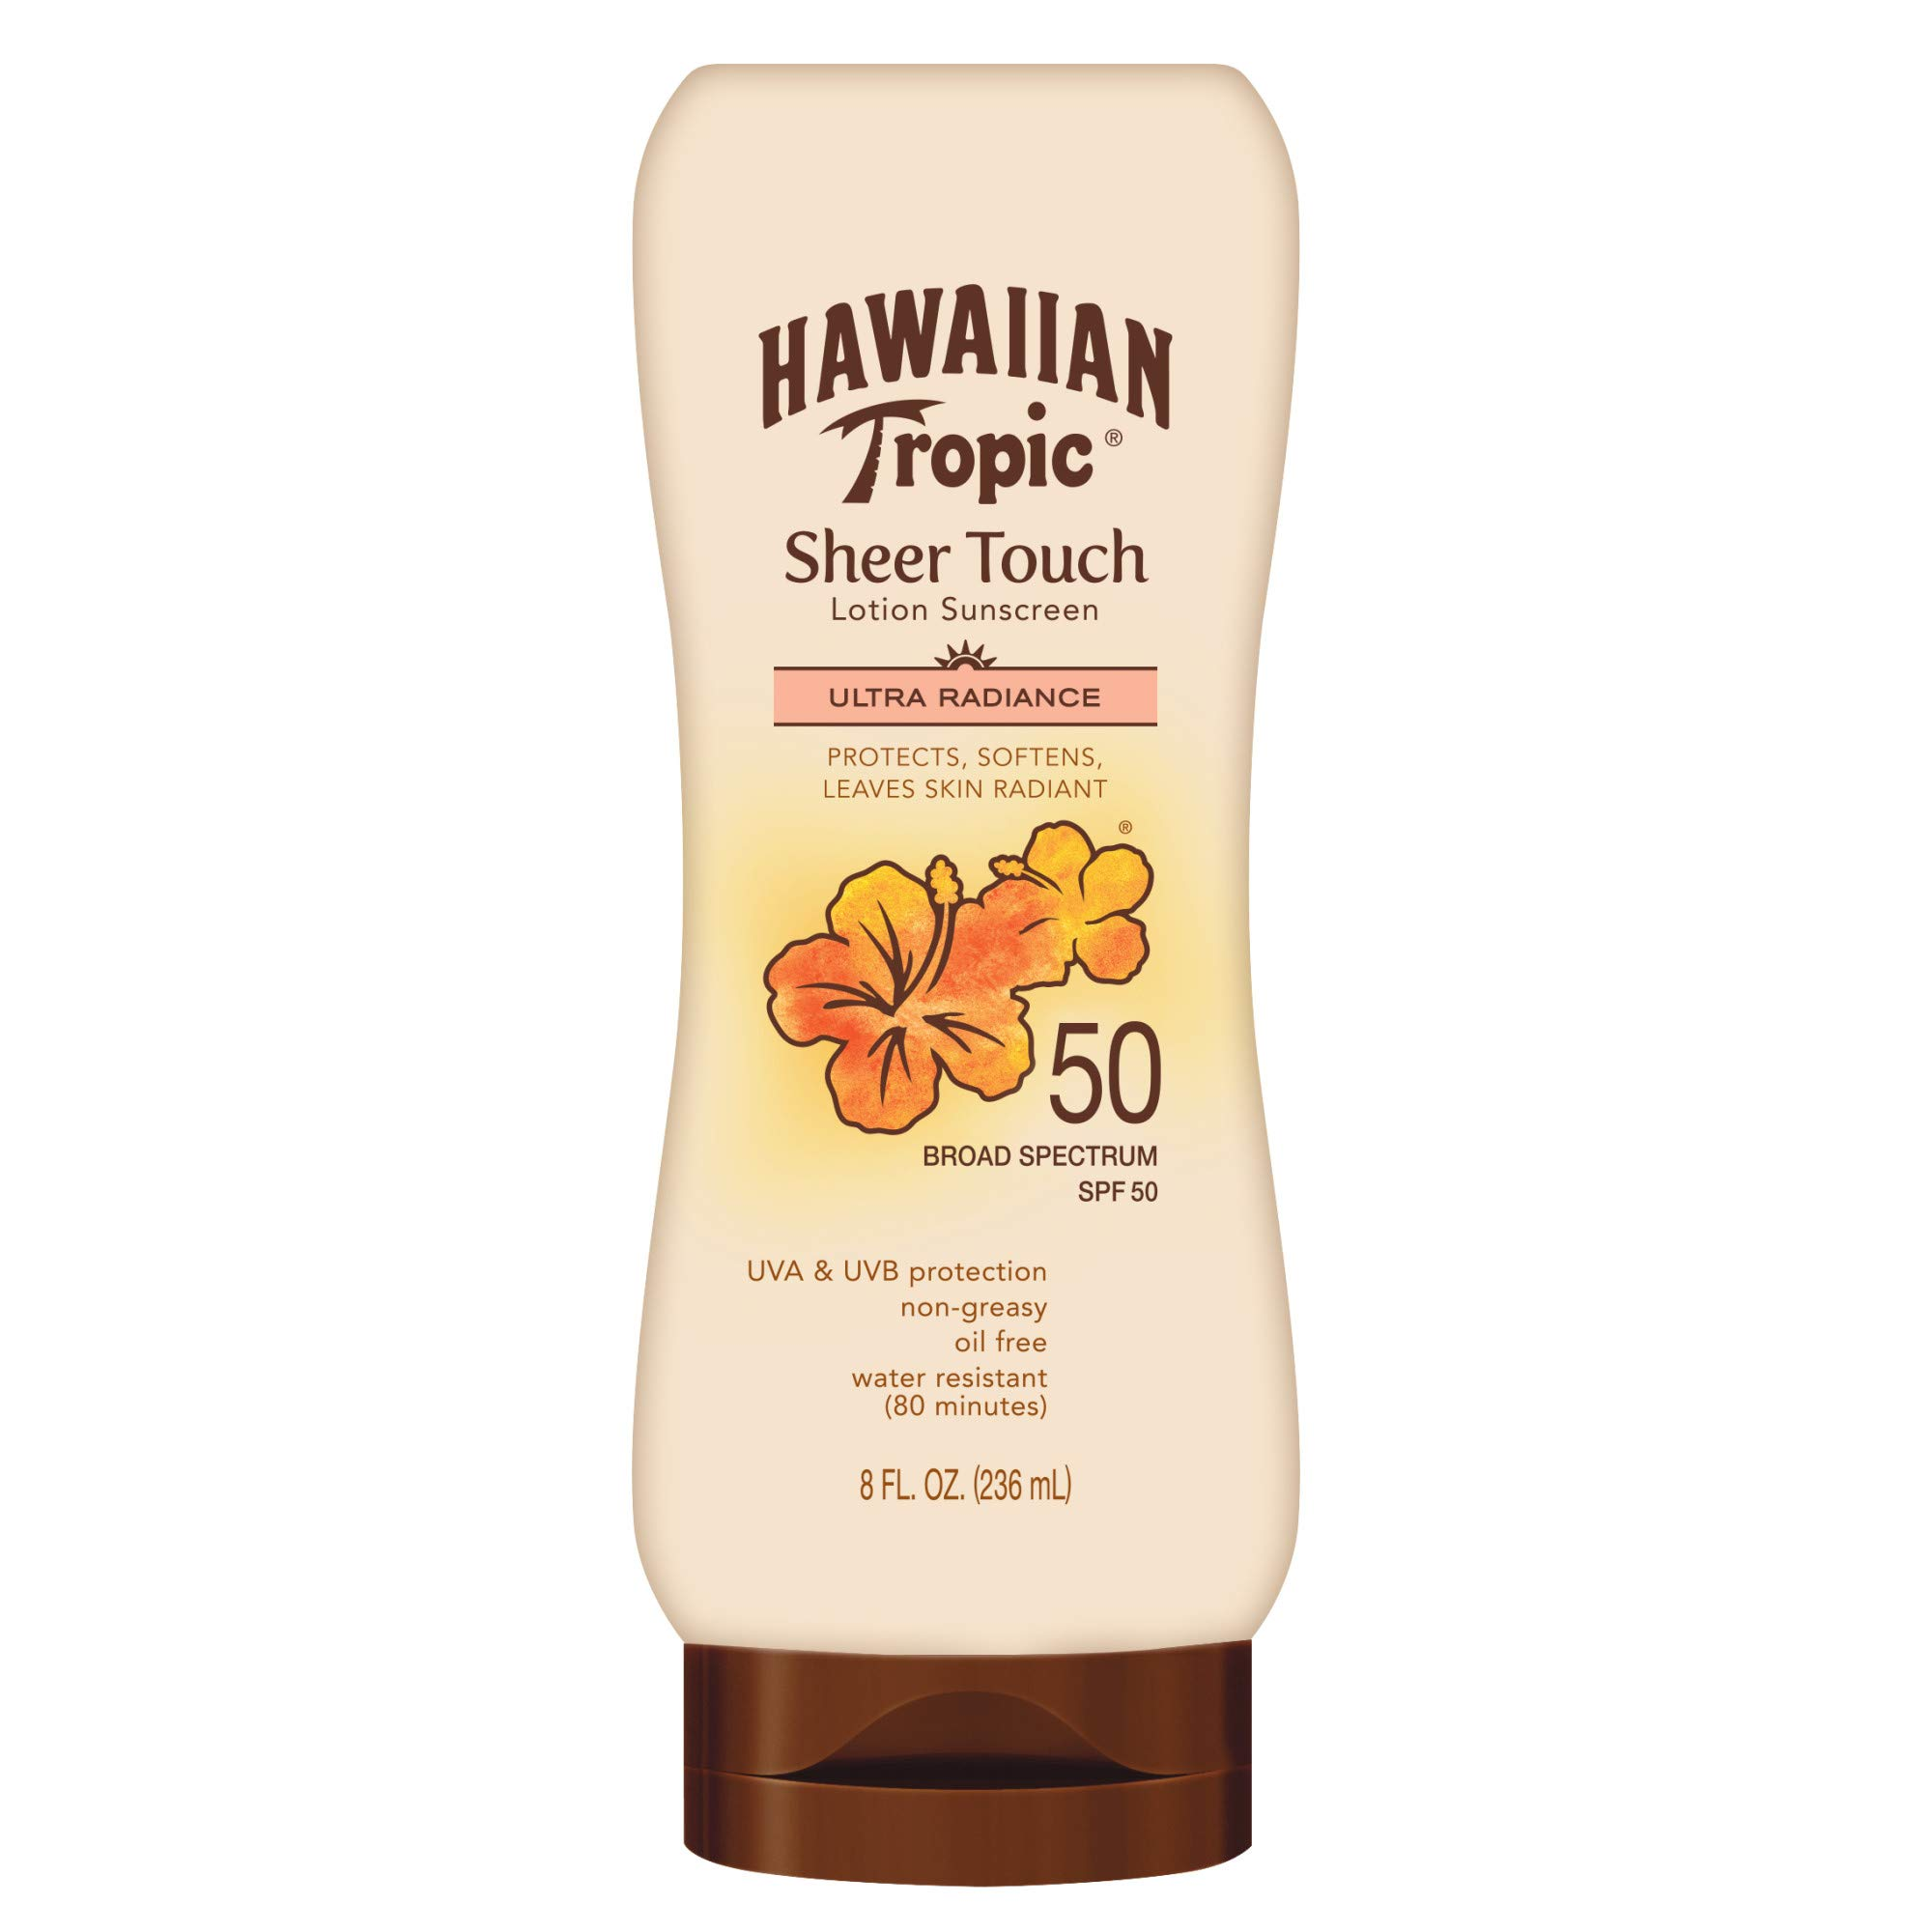 Hawaiian Tropic Sheer Touch Lotion Sunscreen, Moisturizing Broad-Spectrum Protection, SPF 50, 8 Ounces - Pack of 2 by Hawaiian Tropic